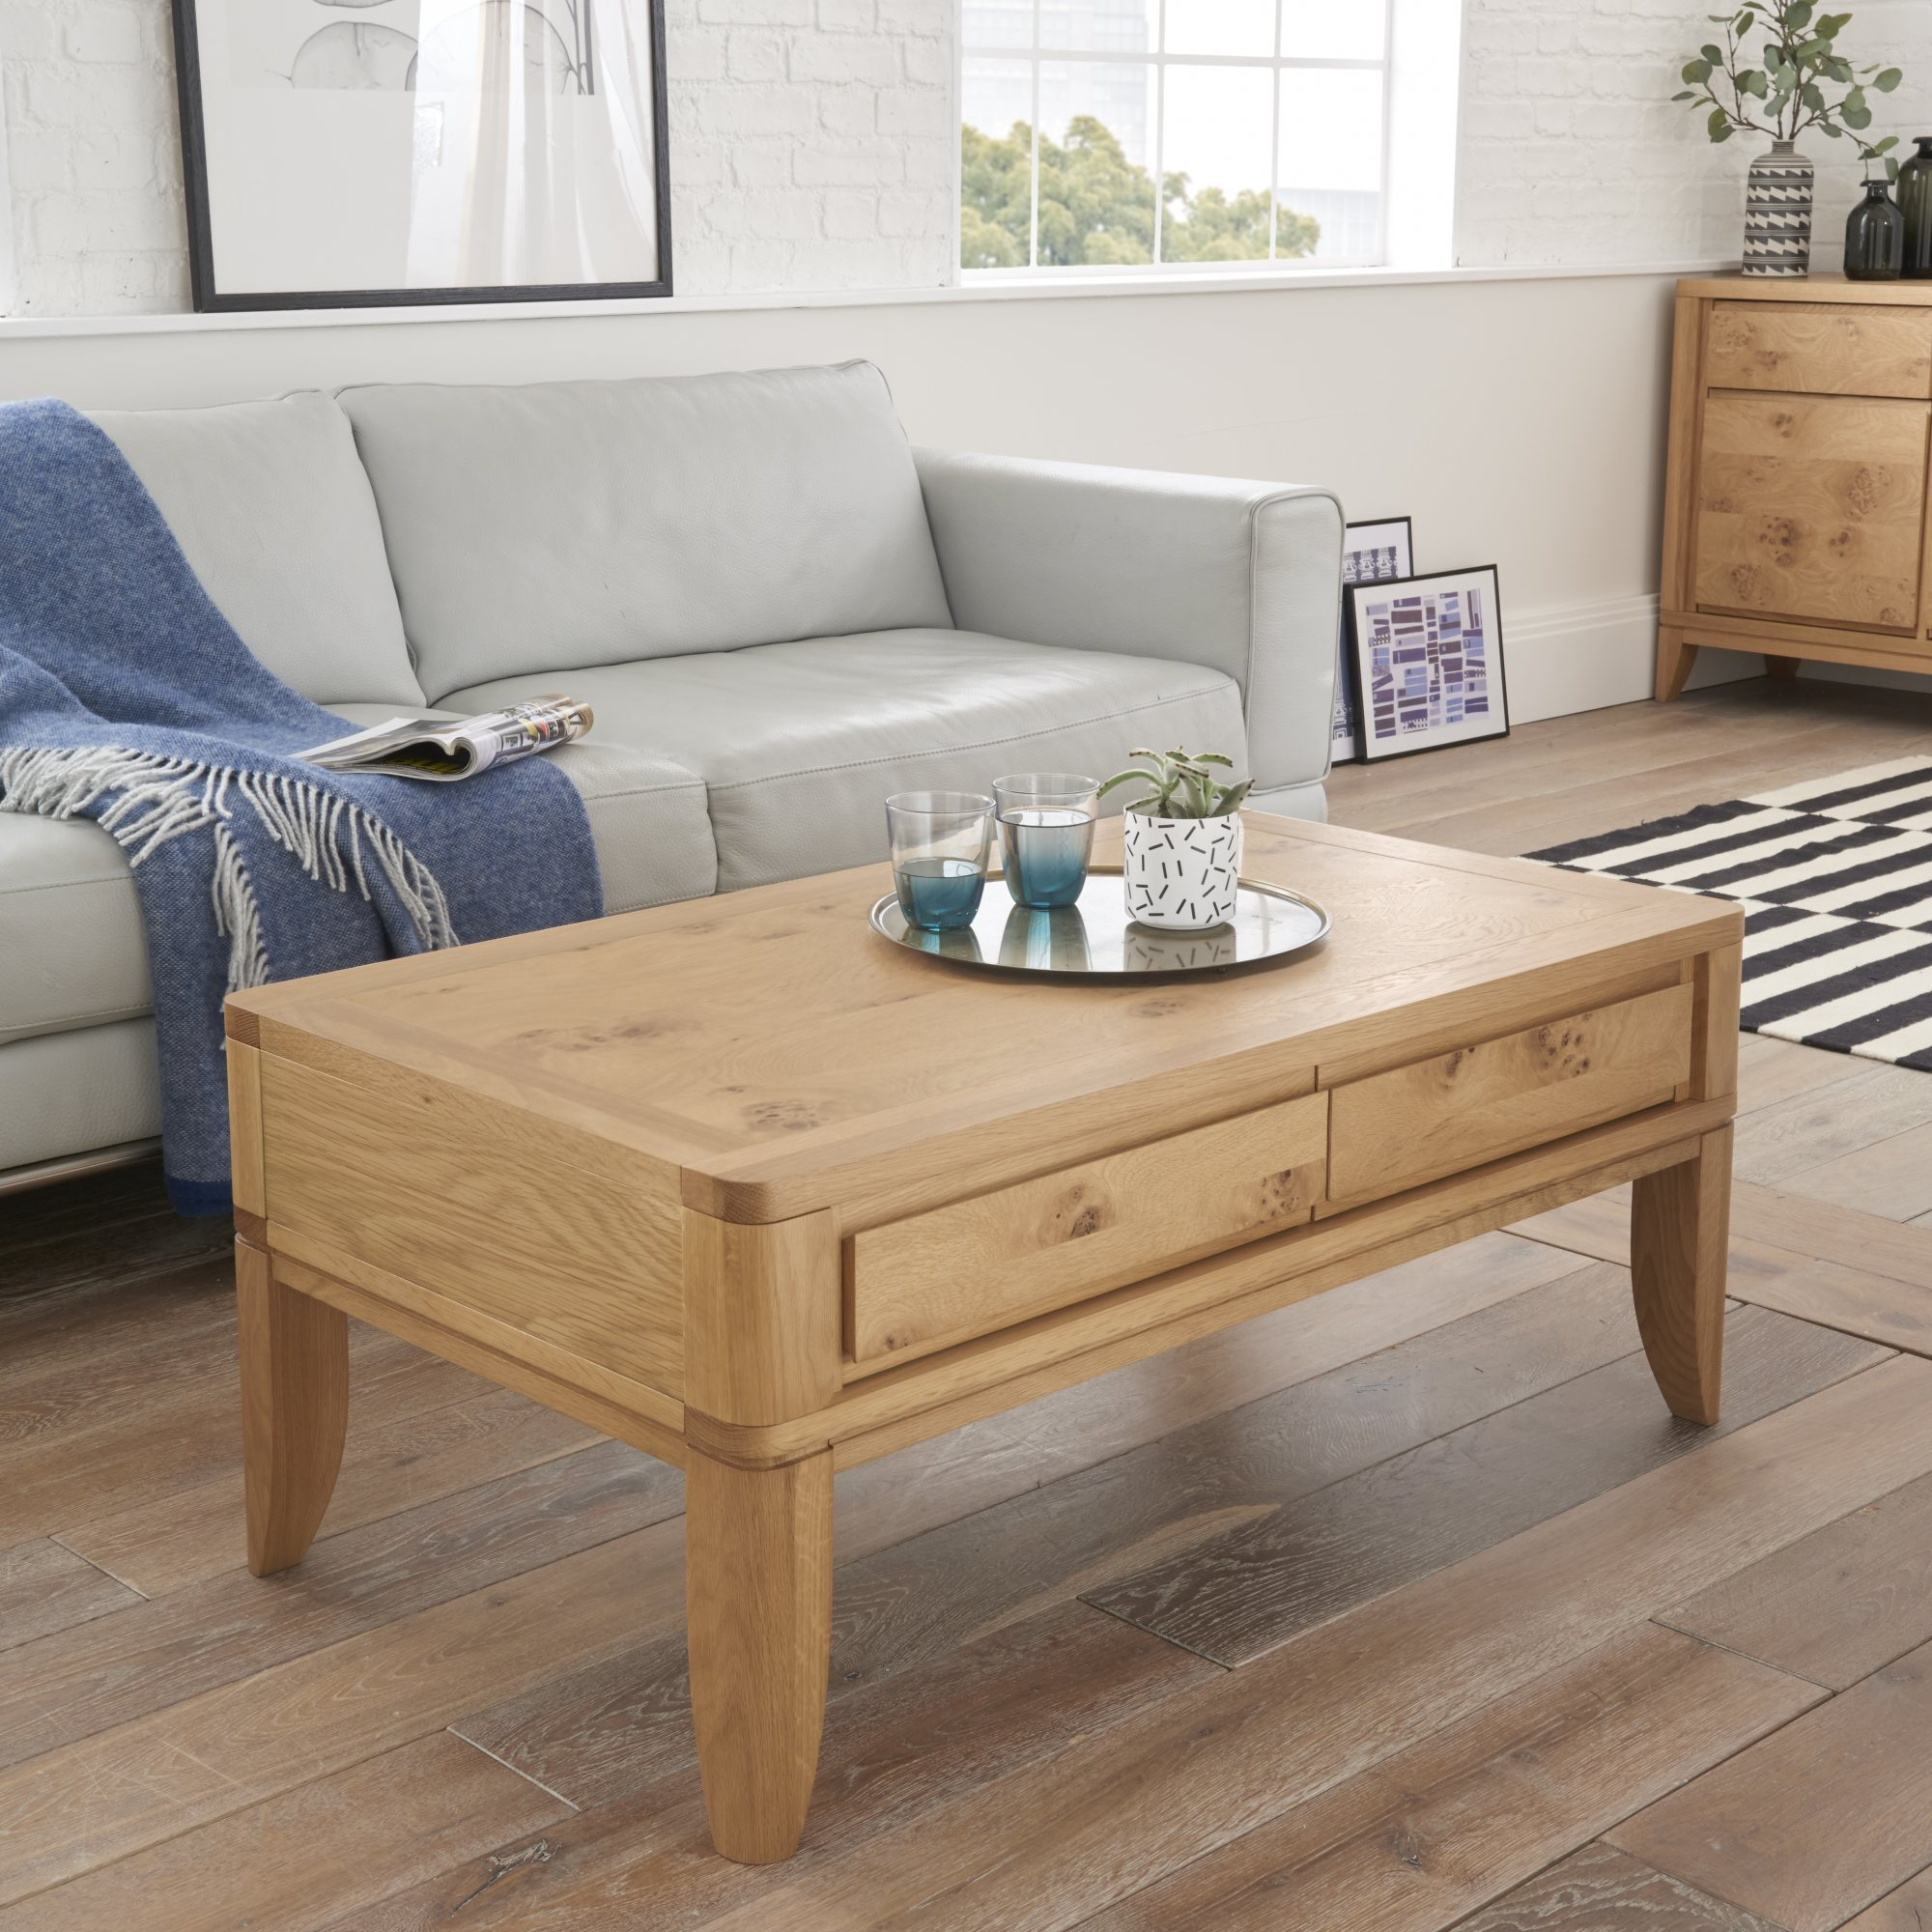 WILLOW PARK COFFEE TABLE L105cm x D60cm x H43cm